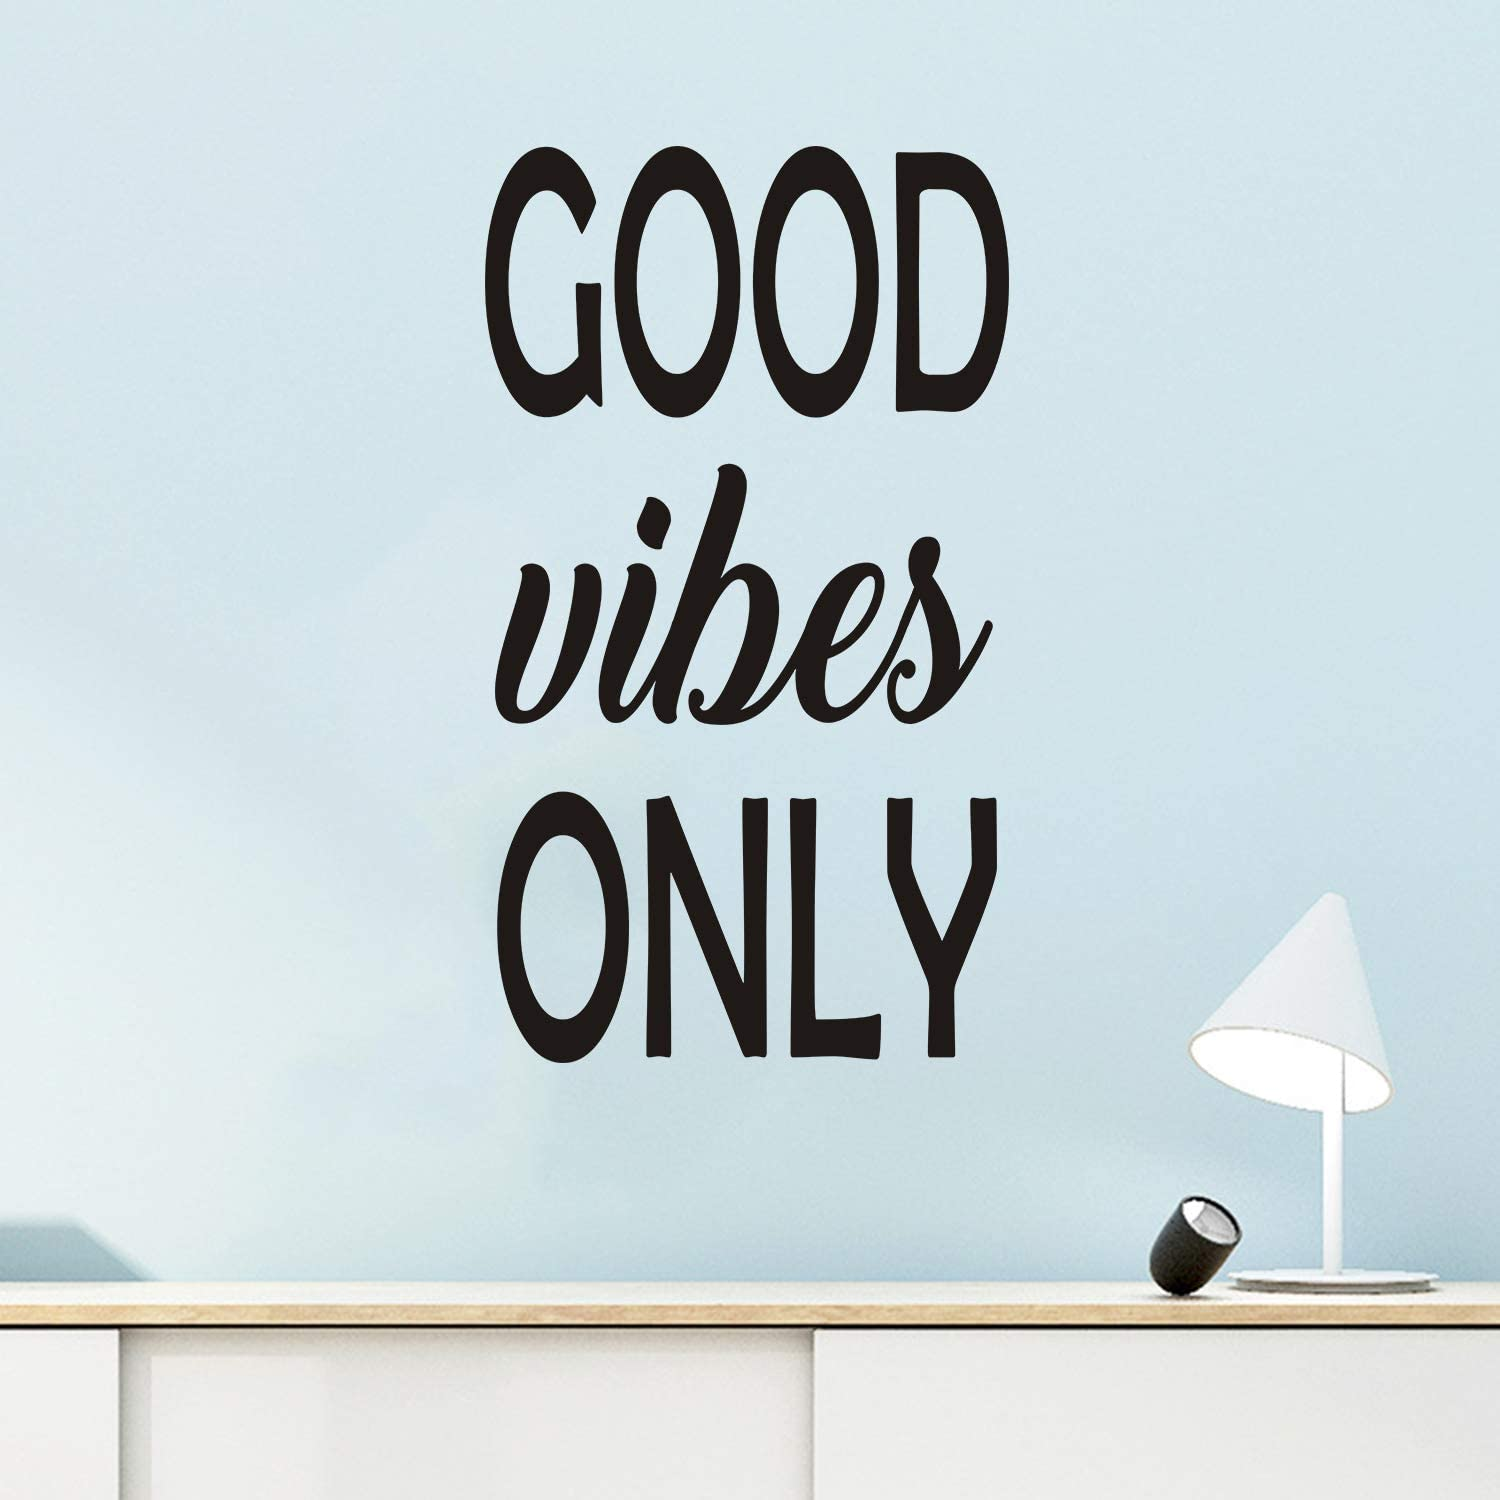 VODOE Inspirational Wall Decals, Office Wall Decals, Quotes Bedroom Kitchen Bathroom Classroom Dorm Women Girls Dance Positive Inspired Sayings Vinyl Art Home Decor Stickers Good Vibes Only 12